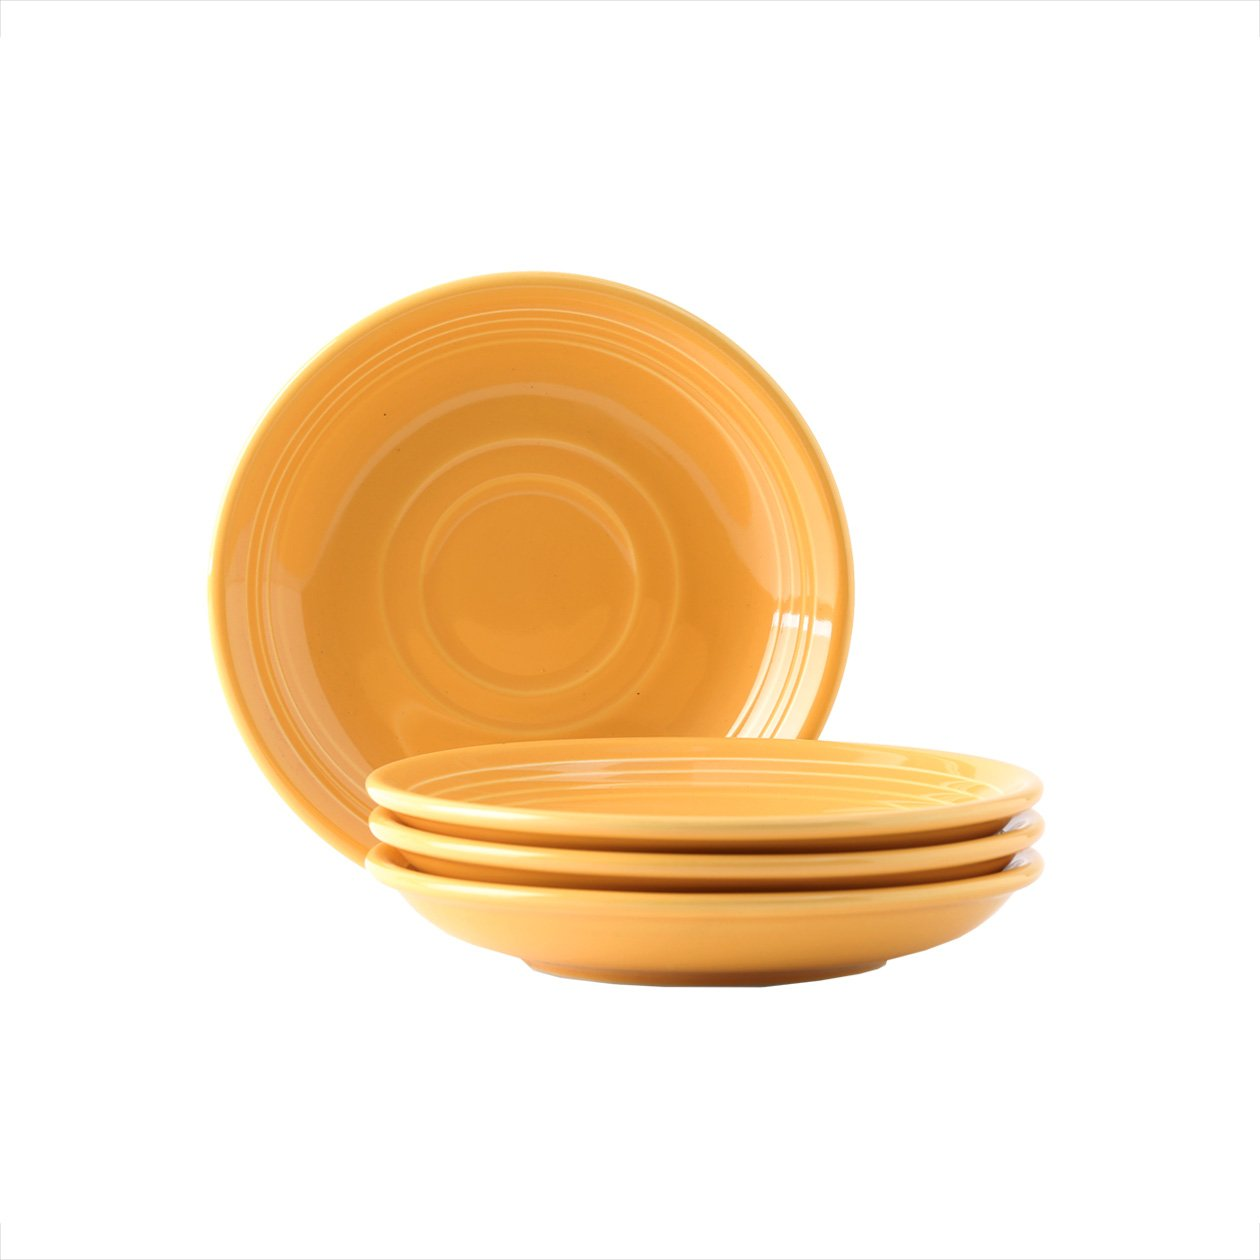 Tuxton Home Concentrix Saucer (Set of 4), 6'', Saffron Yellow; Heavy Duty; Chip Resistant; Lead and Cadmium Free; Freezer to Oven Safe up to 500F